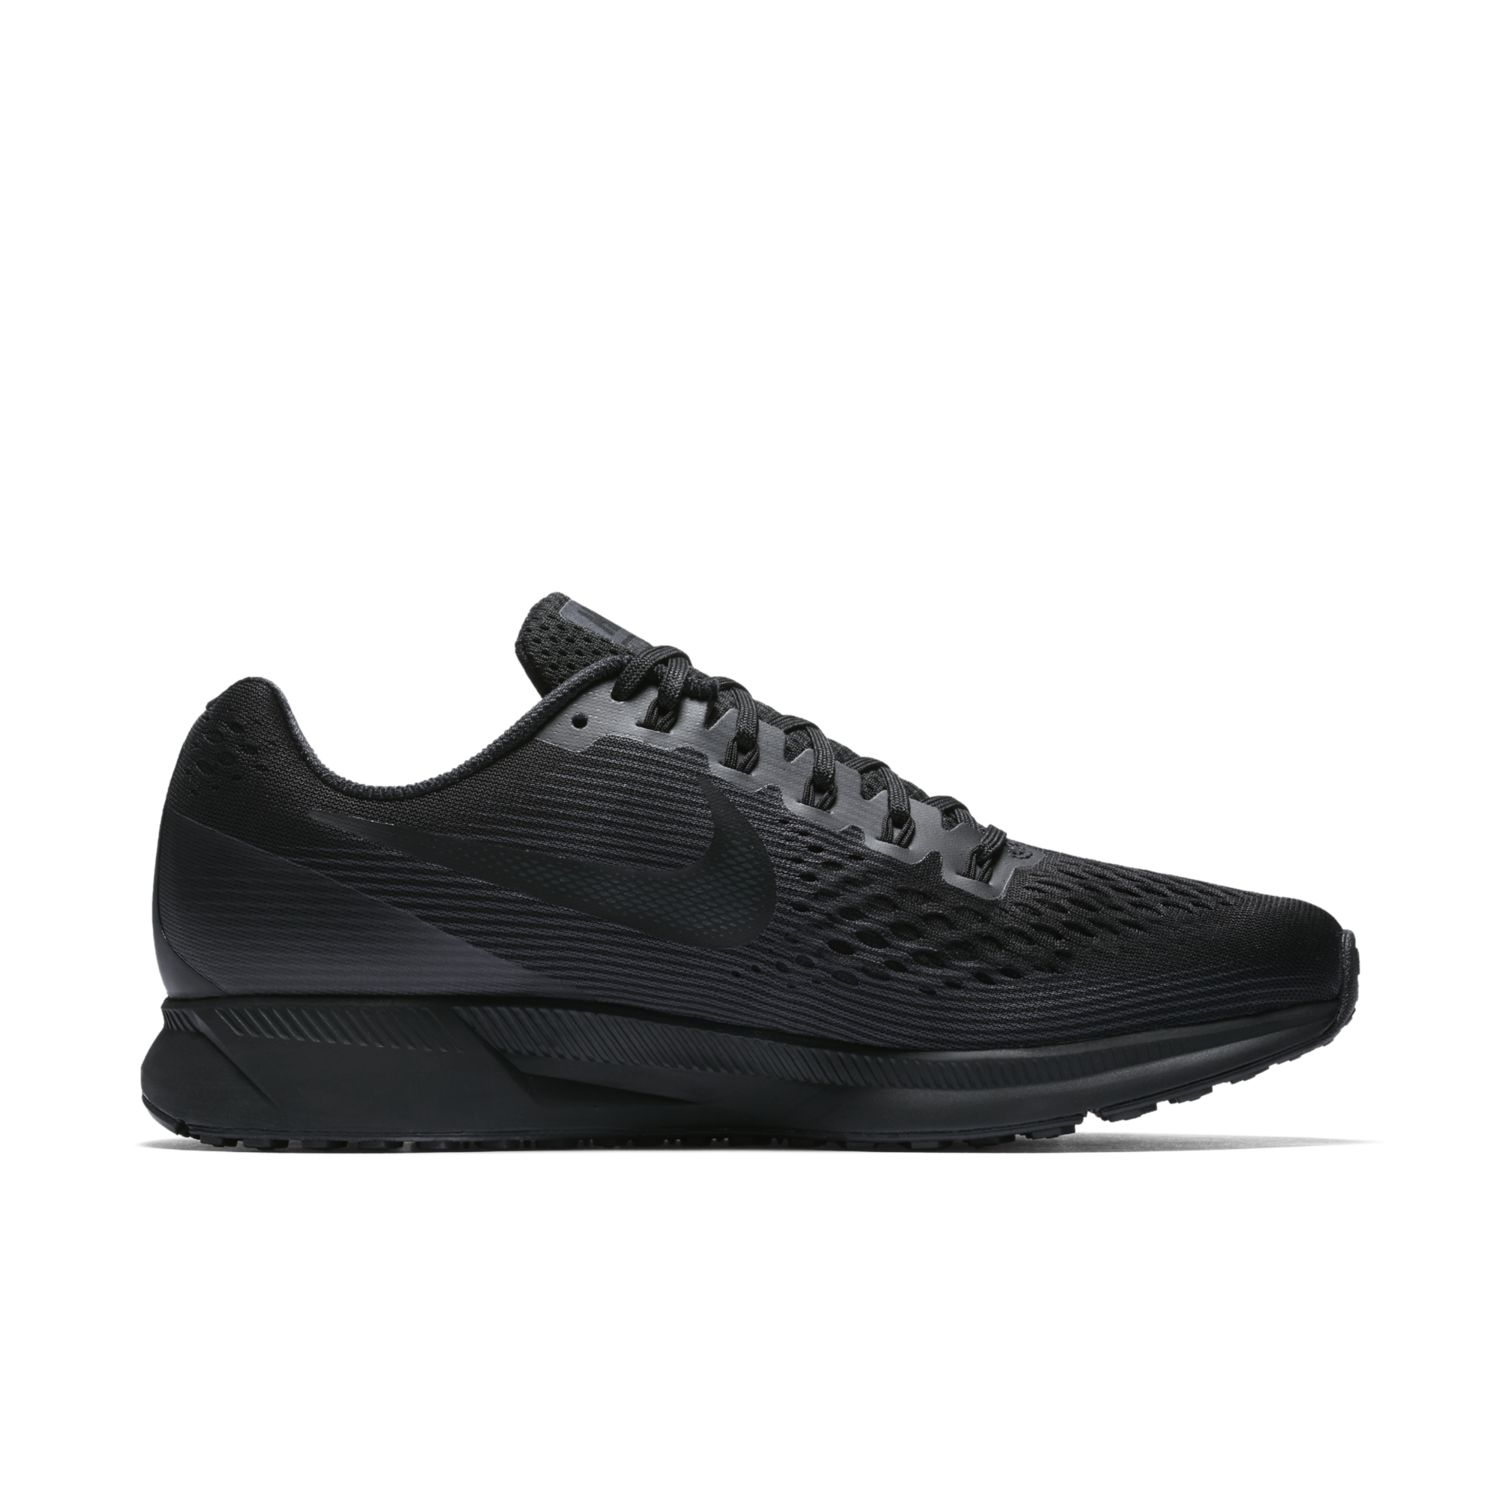 Nike Air Zoom Pegasus 34 in Schwarz